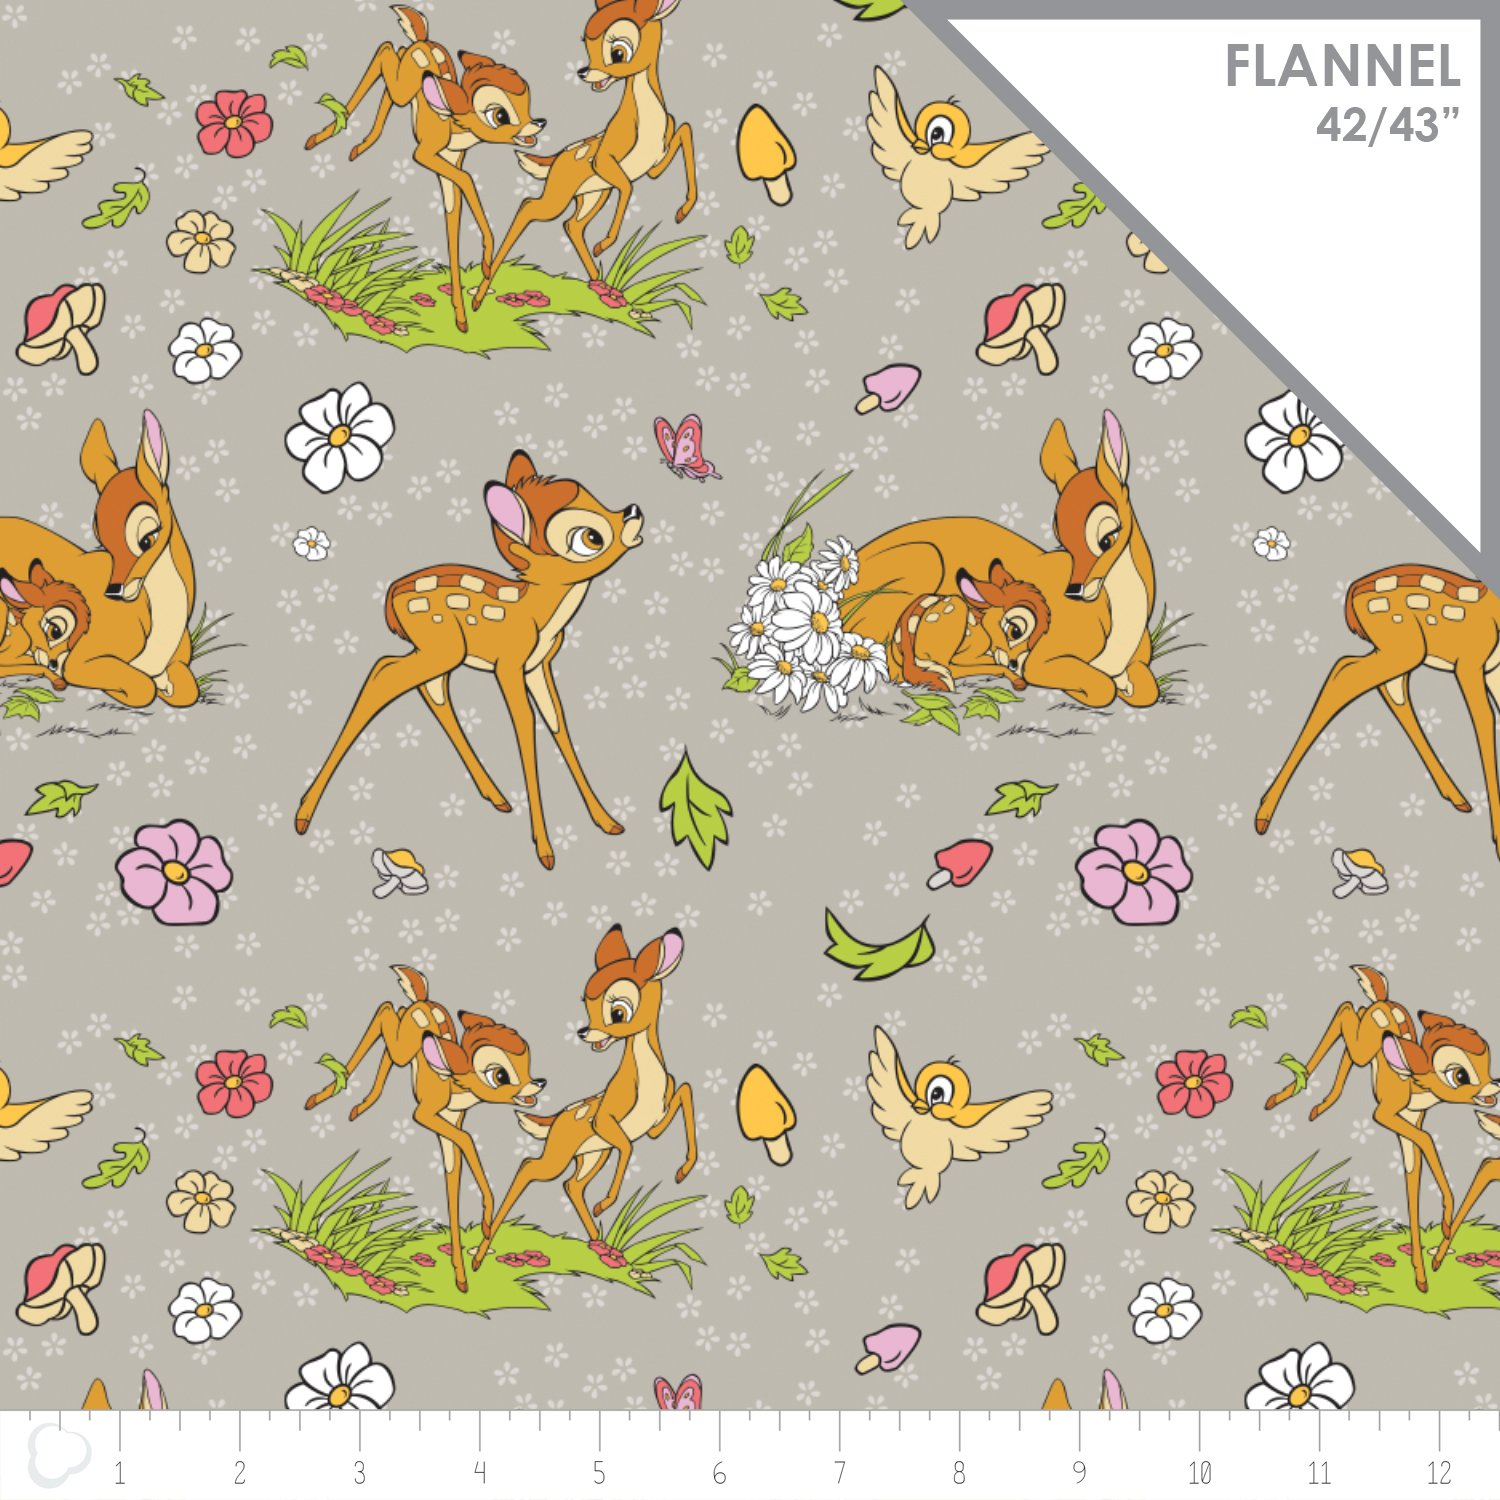 Camelot - Bambi Flannel